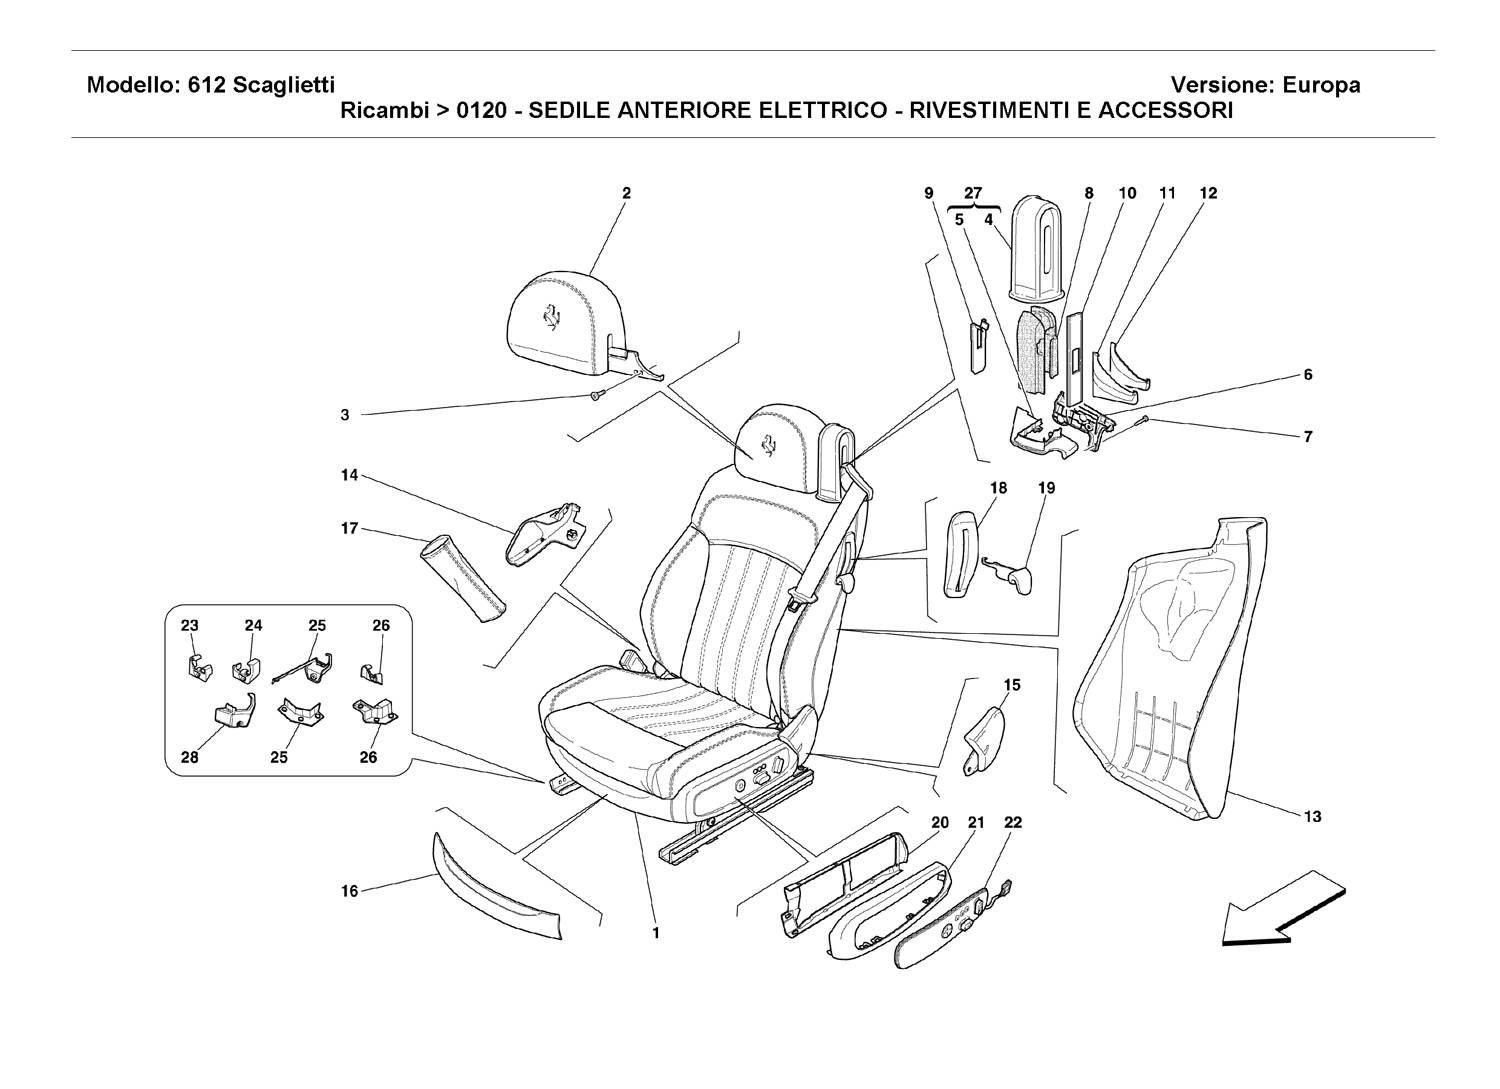 ELECTRICAL FRONT SEAT - COVERINGS AND ACCESSORIES